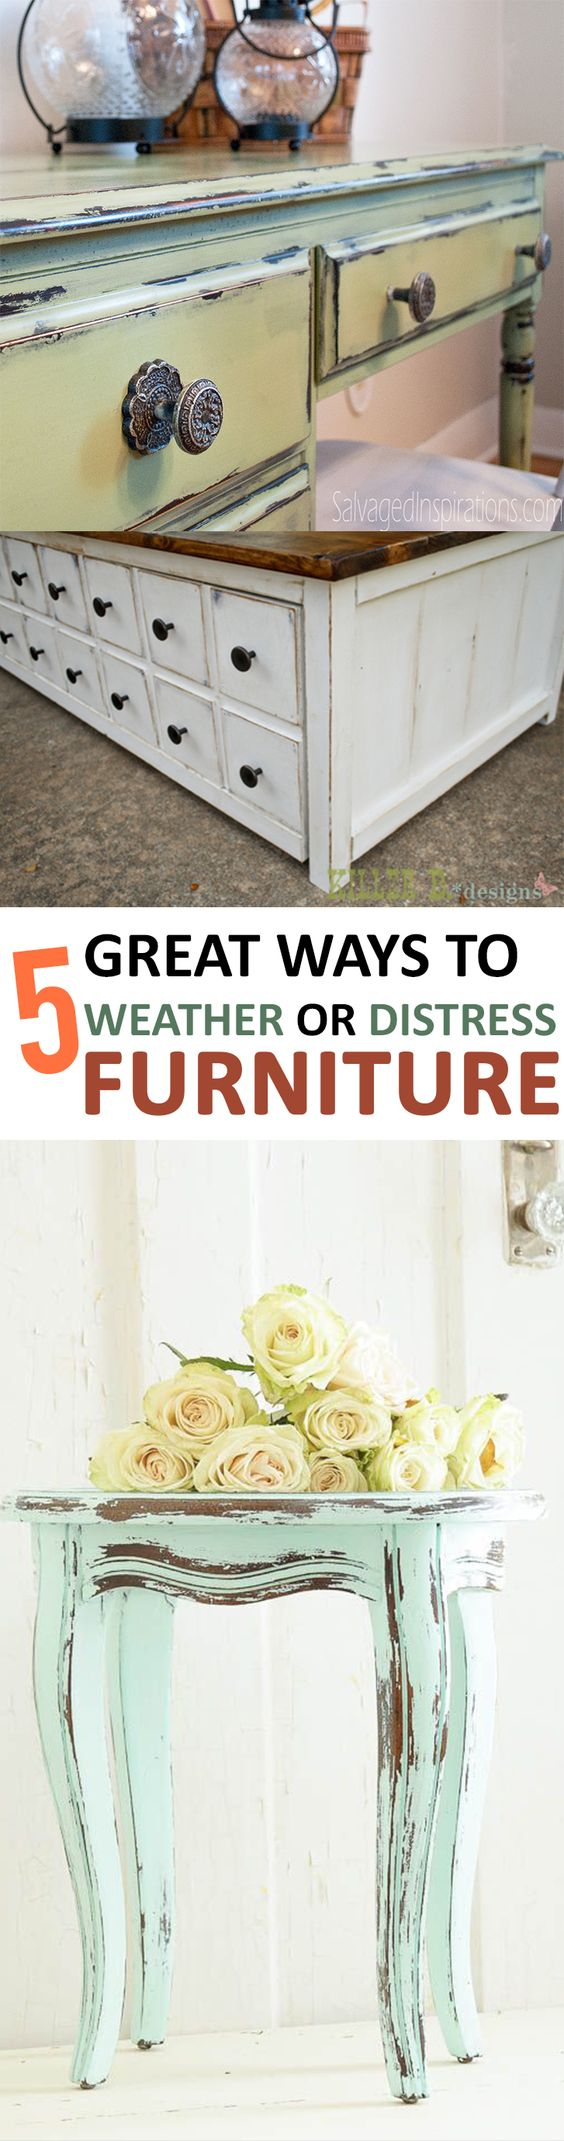 22 5 Great Ways to Weather or Distress Furniture via simphome